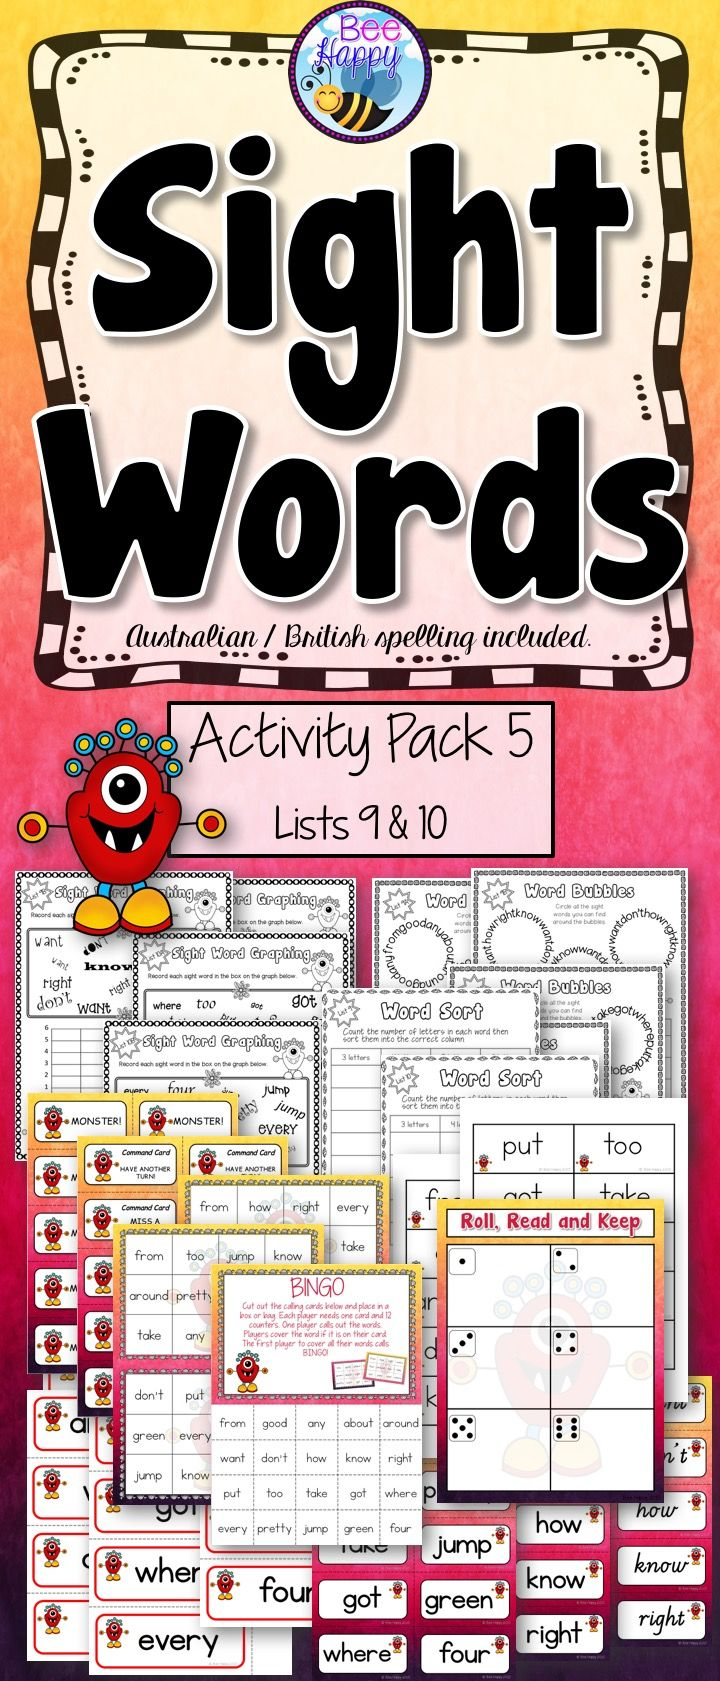 This resource is packed full of worksheets and activities designed to teach, consolidate and review the fifth group of twenty sight words a child needs to learn to become a successful reader. The words included in this package are: from, good, any, about, around, want, don't, how, know, right, put, too, take, got, where, every, pretty, jump, green, four.